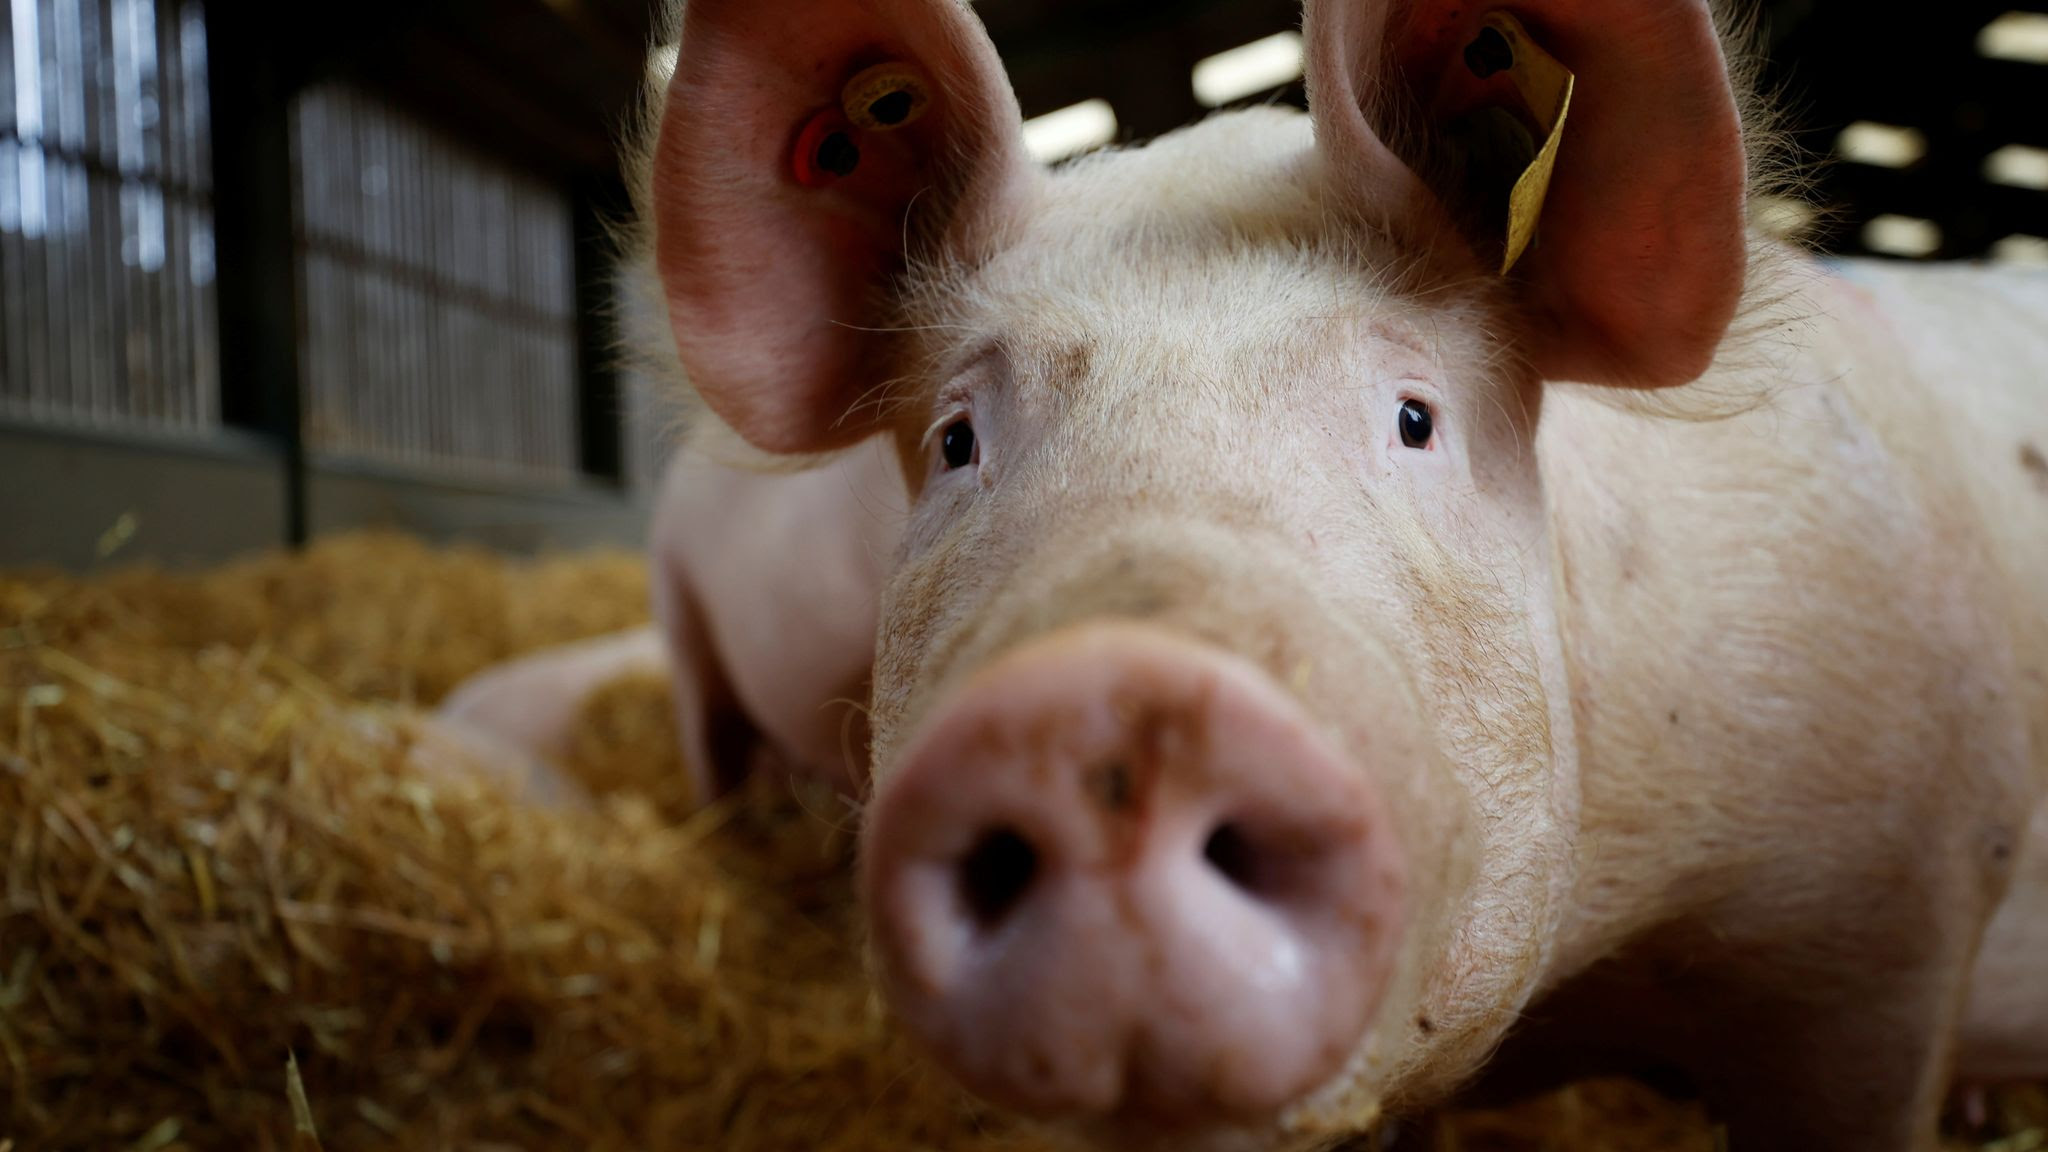 Supply crisis: Overseas butchers and abattoir workers to be granted six-month seasonal worker visas to deal with pig backlog